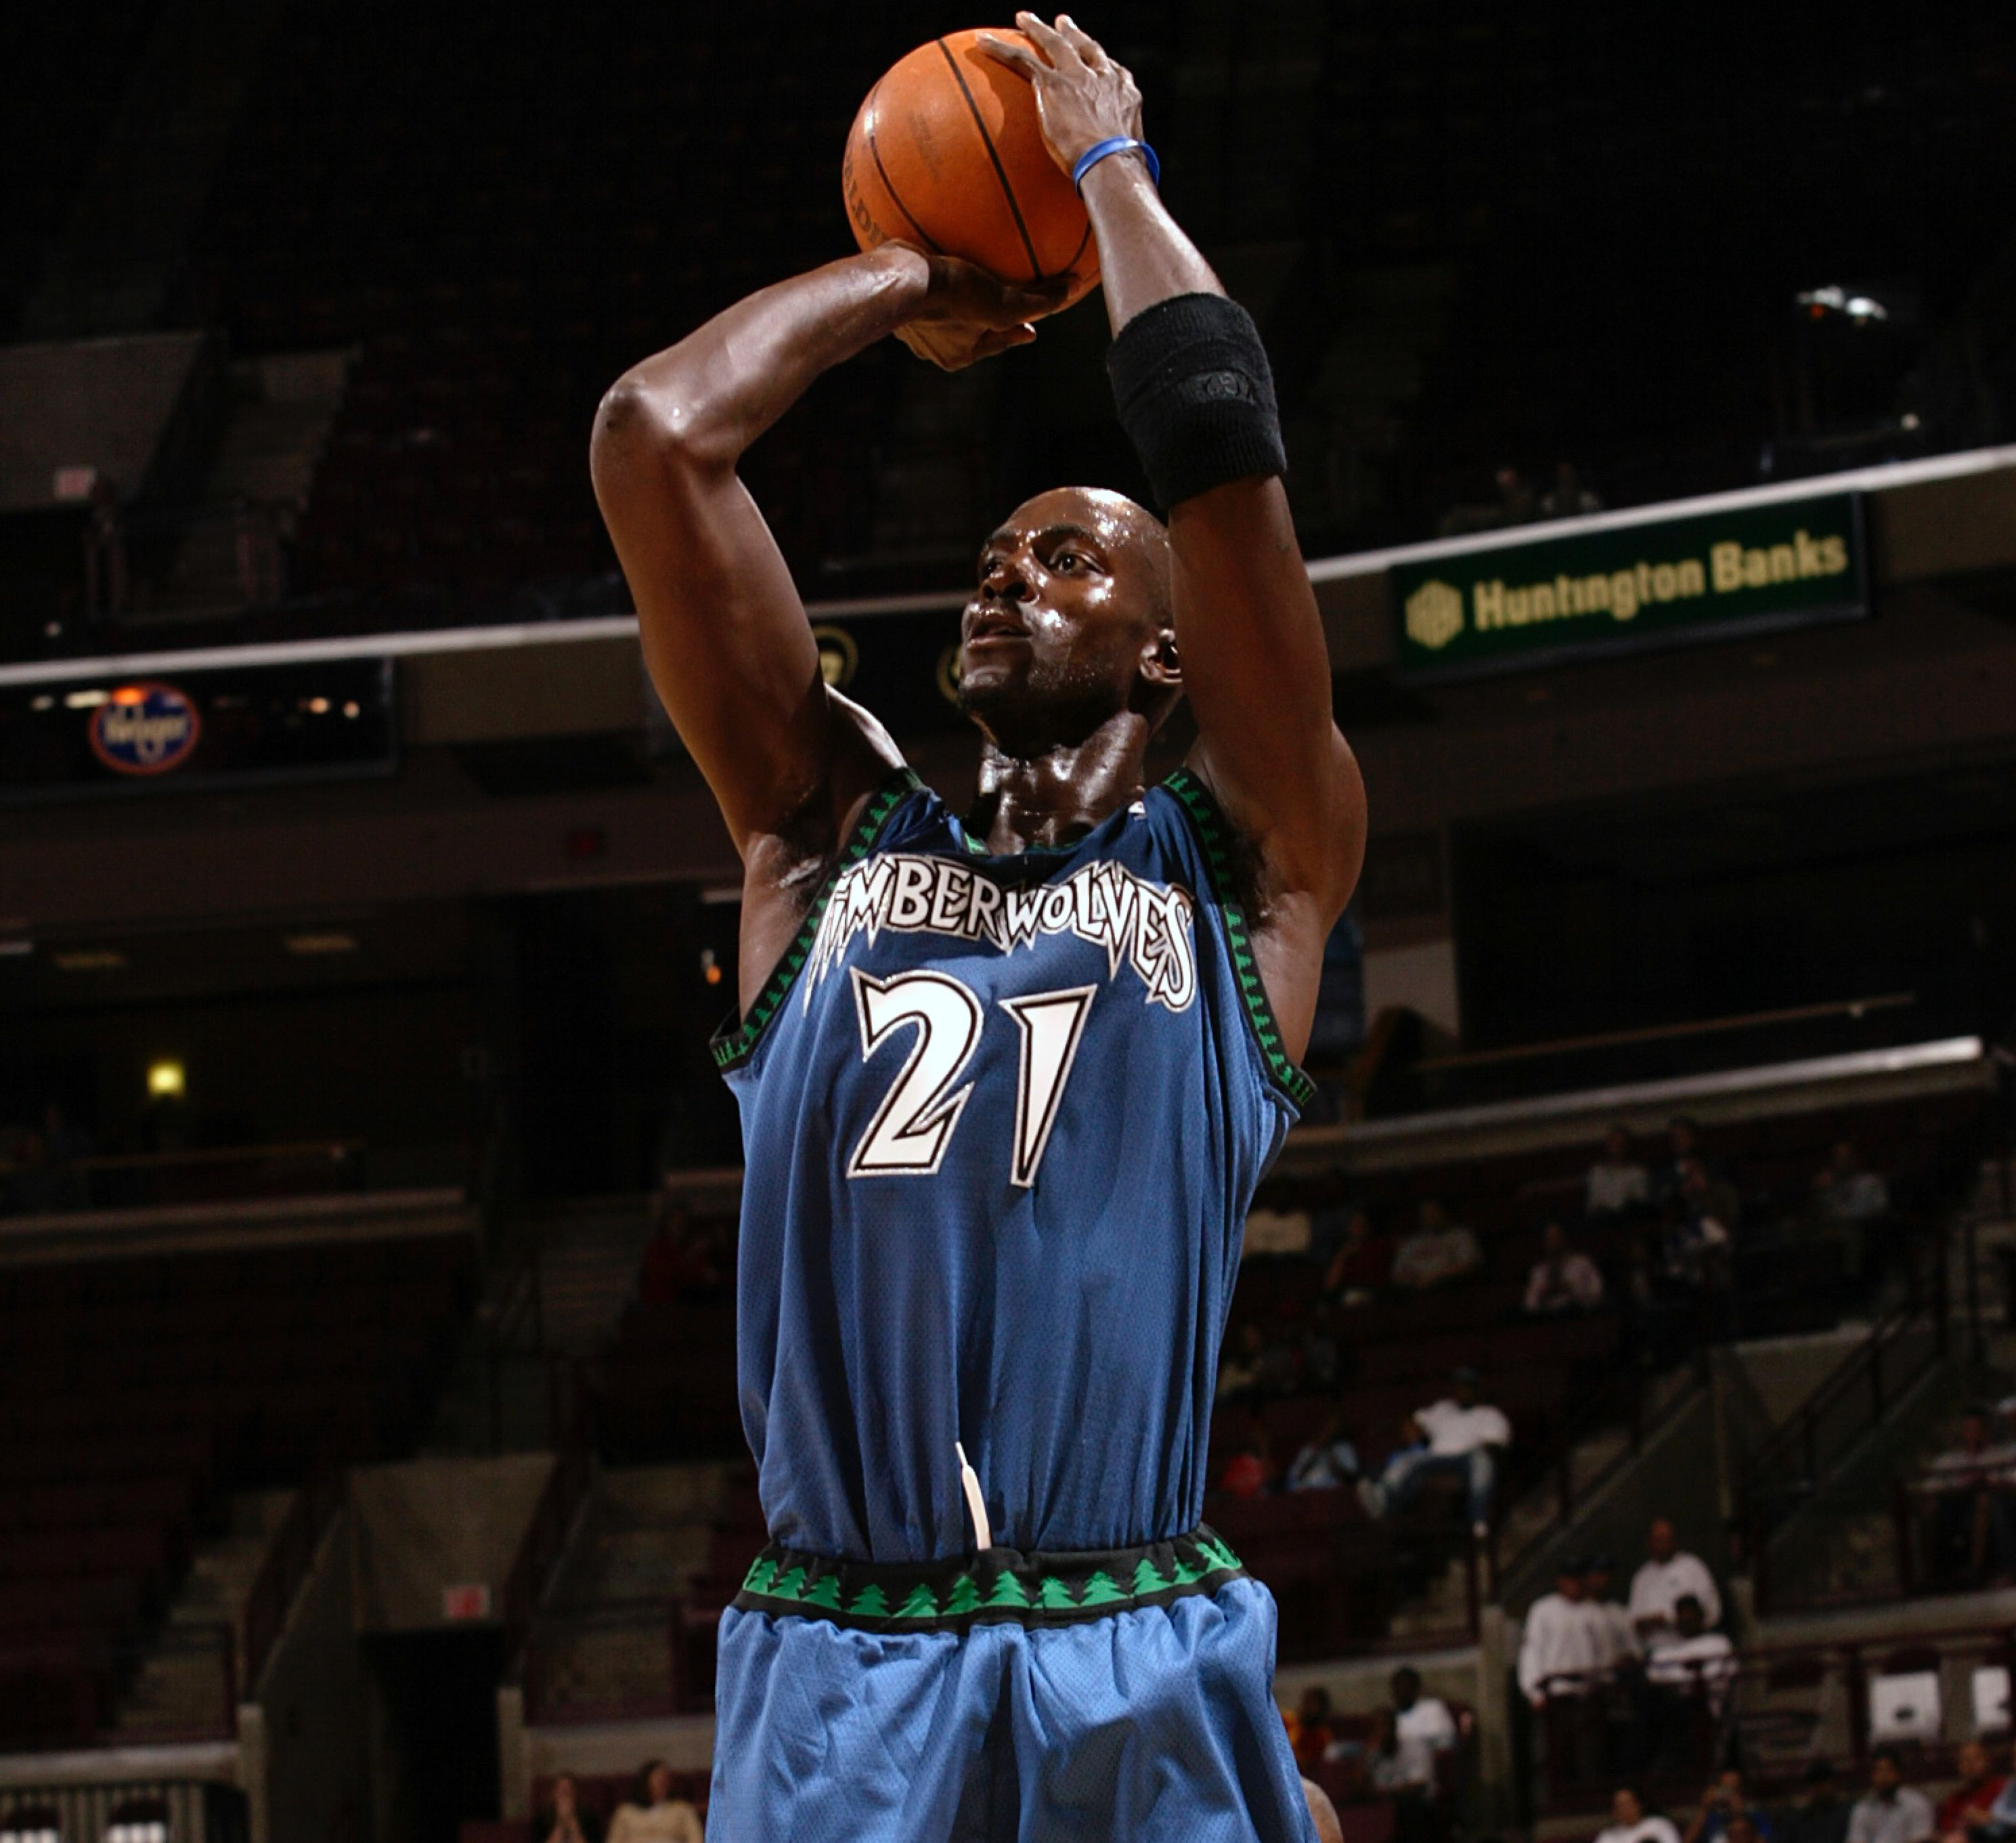 Oct 9, 2003; Columbus, OH, USA; #21 Kevin Garnett of the Minnesota Timberwolves in action during NBA preseason game against the Milwaukee Bucks at Value City Arena in Columbus, Ohio. Mandatory Credit: